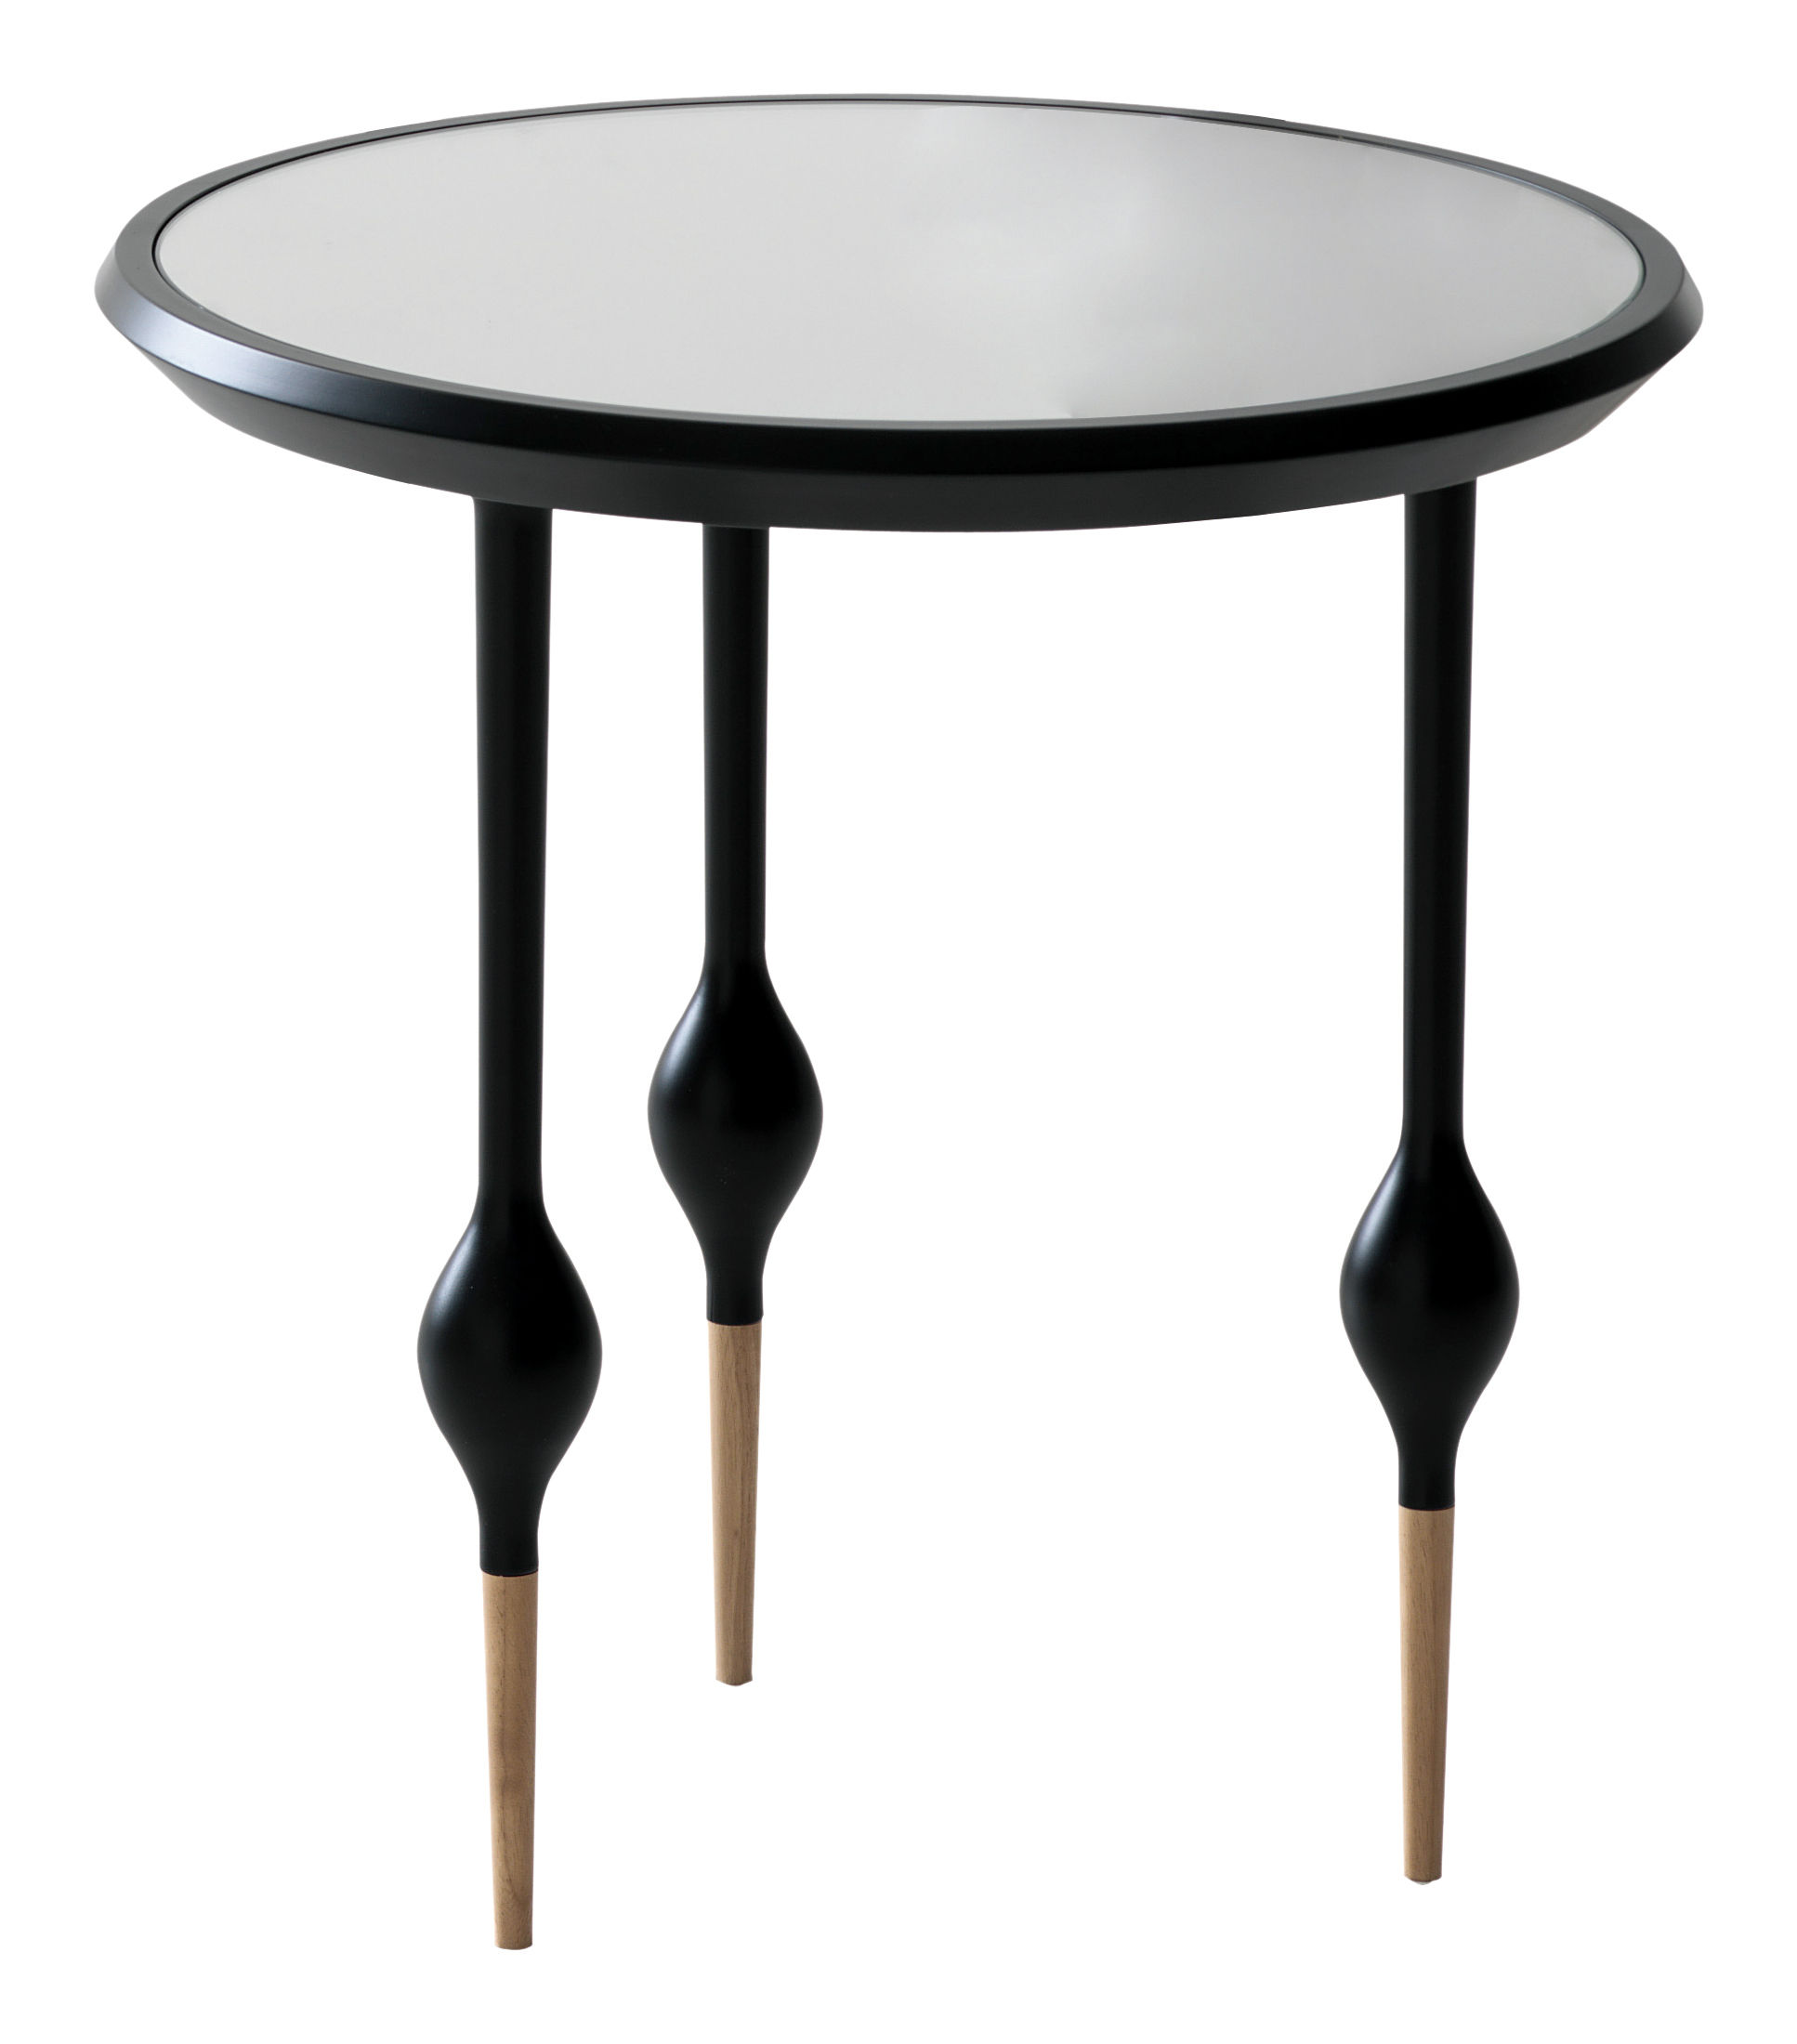 table d 39 appoint philippe i h 42 x 42 cm plateau noir verre miroir casamania. Black Bedroom Furniture Sets. Home Design Ideas